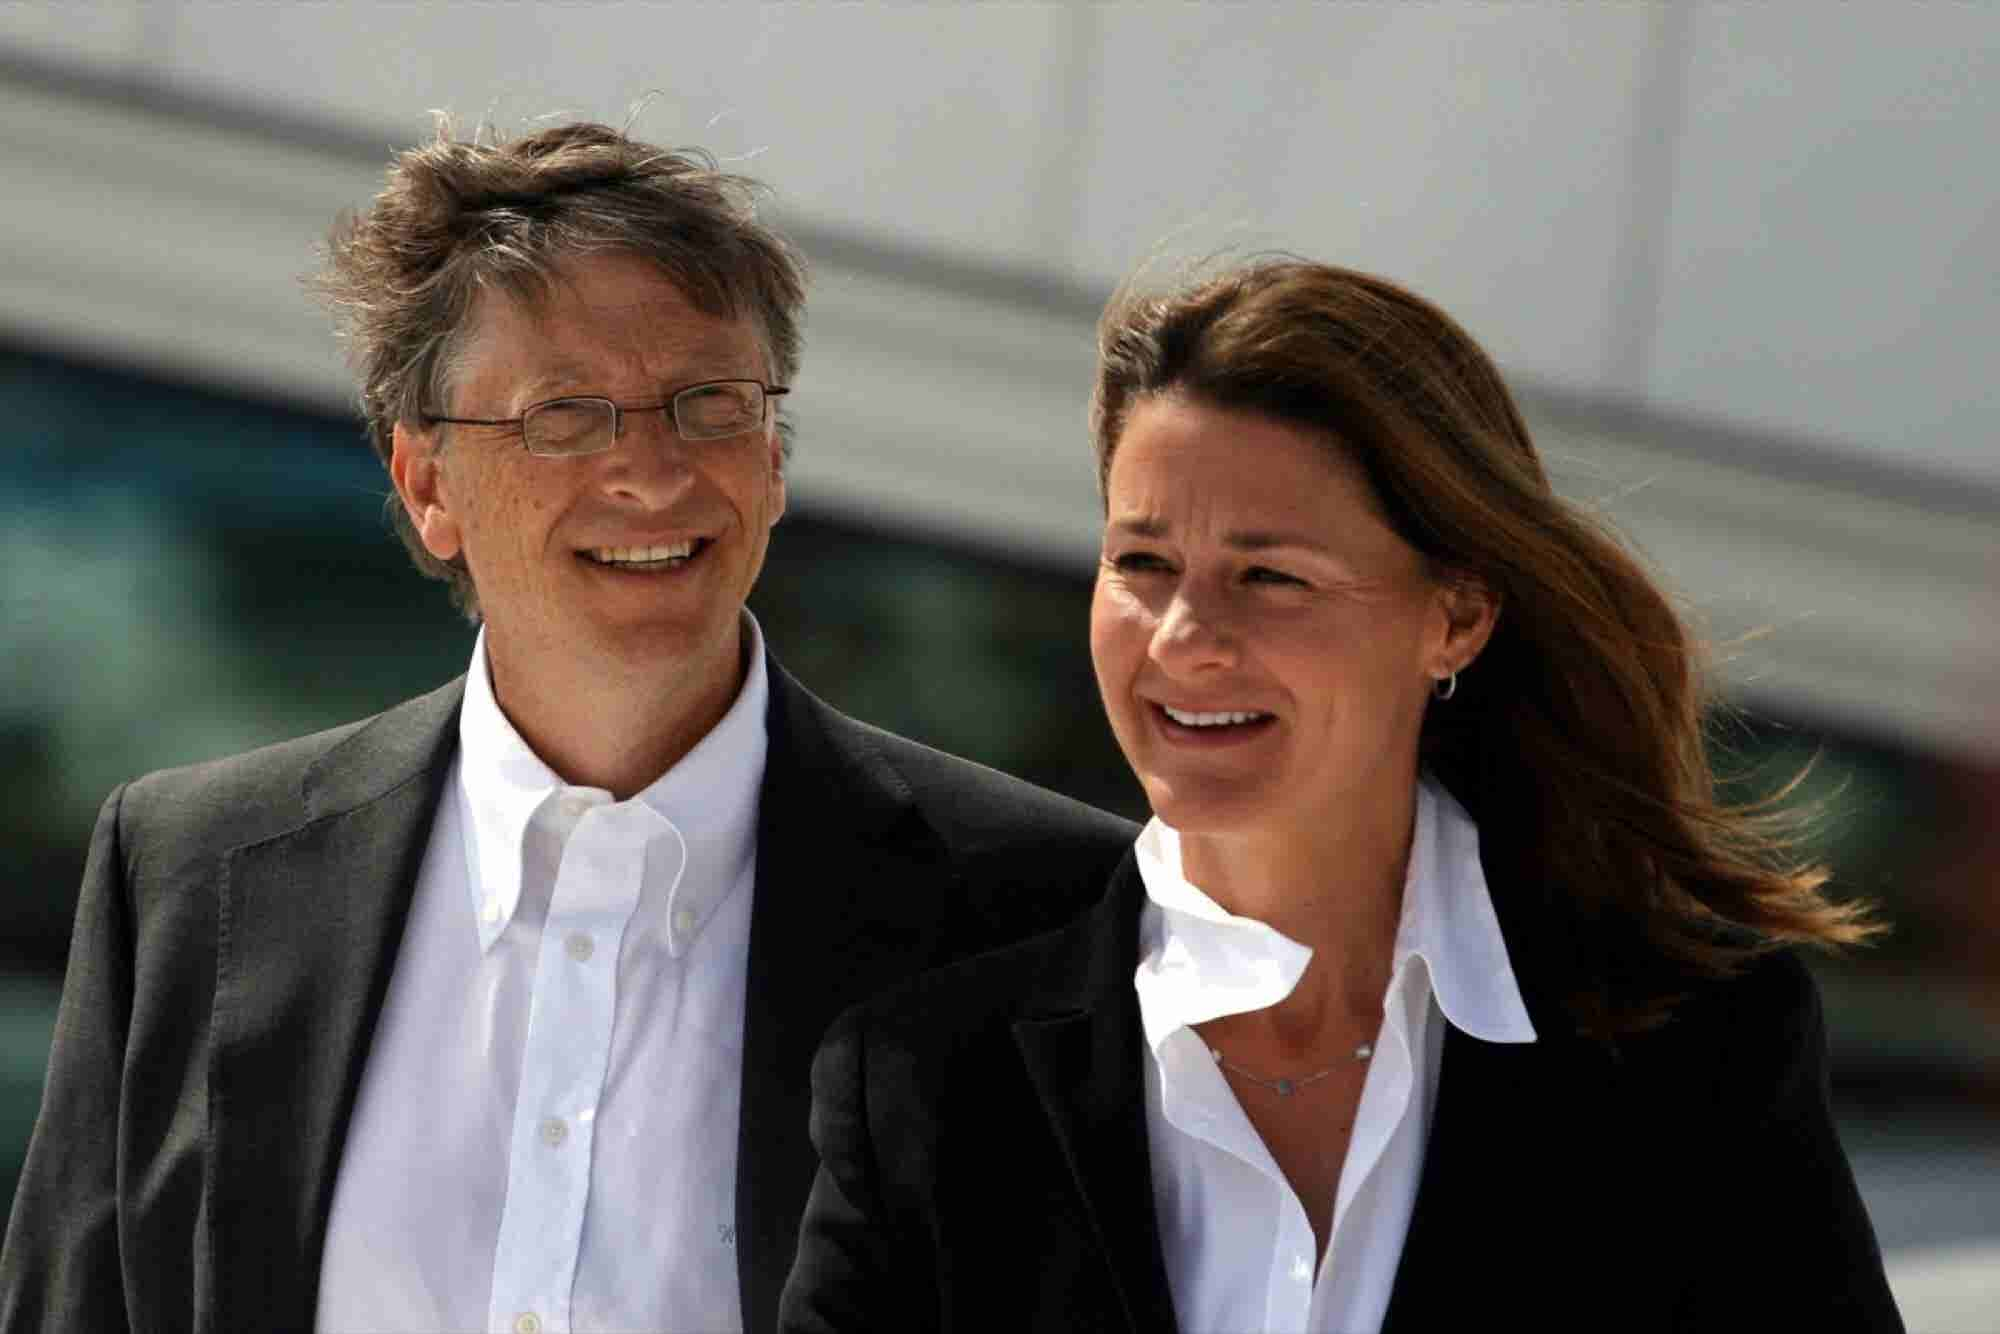 Study: Most of the World's Richest Philanthropists Are Self-Made